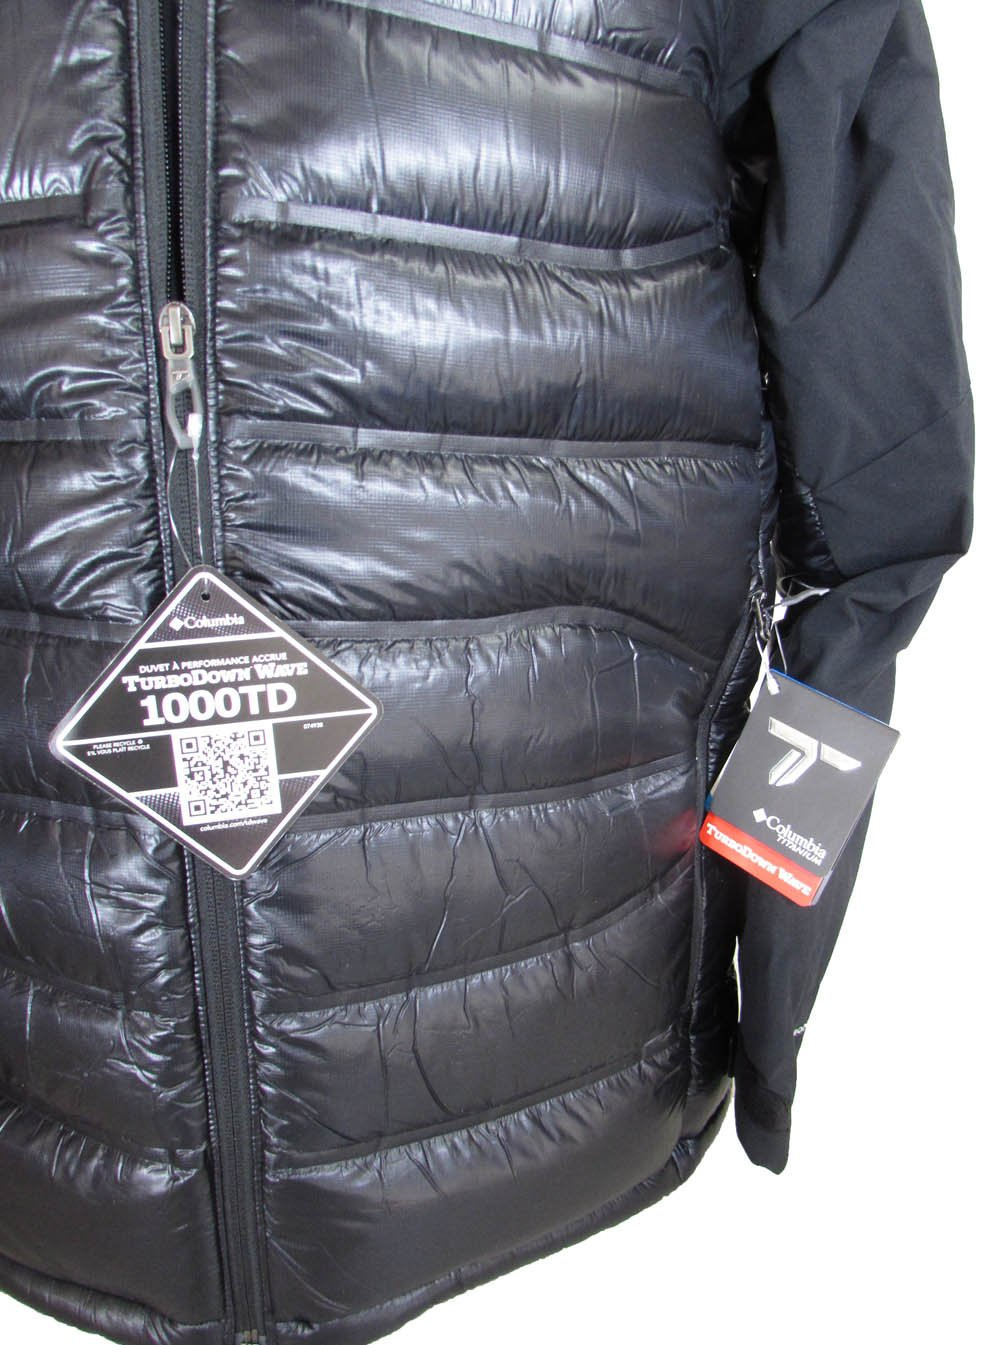 Columbia Heatzone 1000 Turbodown Hooded Down Jacket Small Black  Amazon.ca   Sports   Outdoors f8472600af